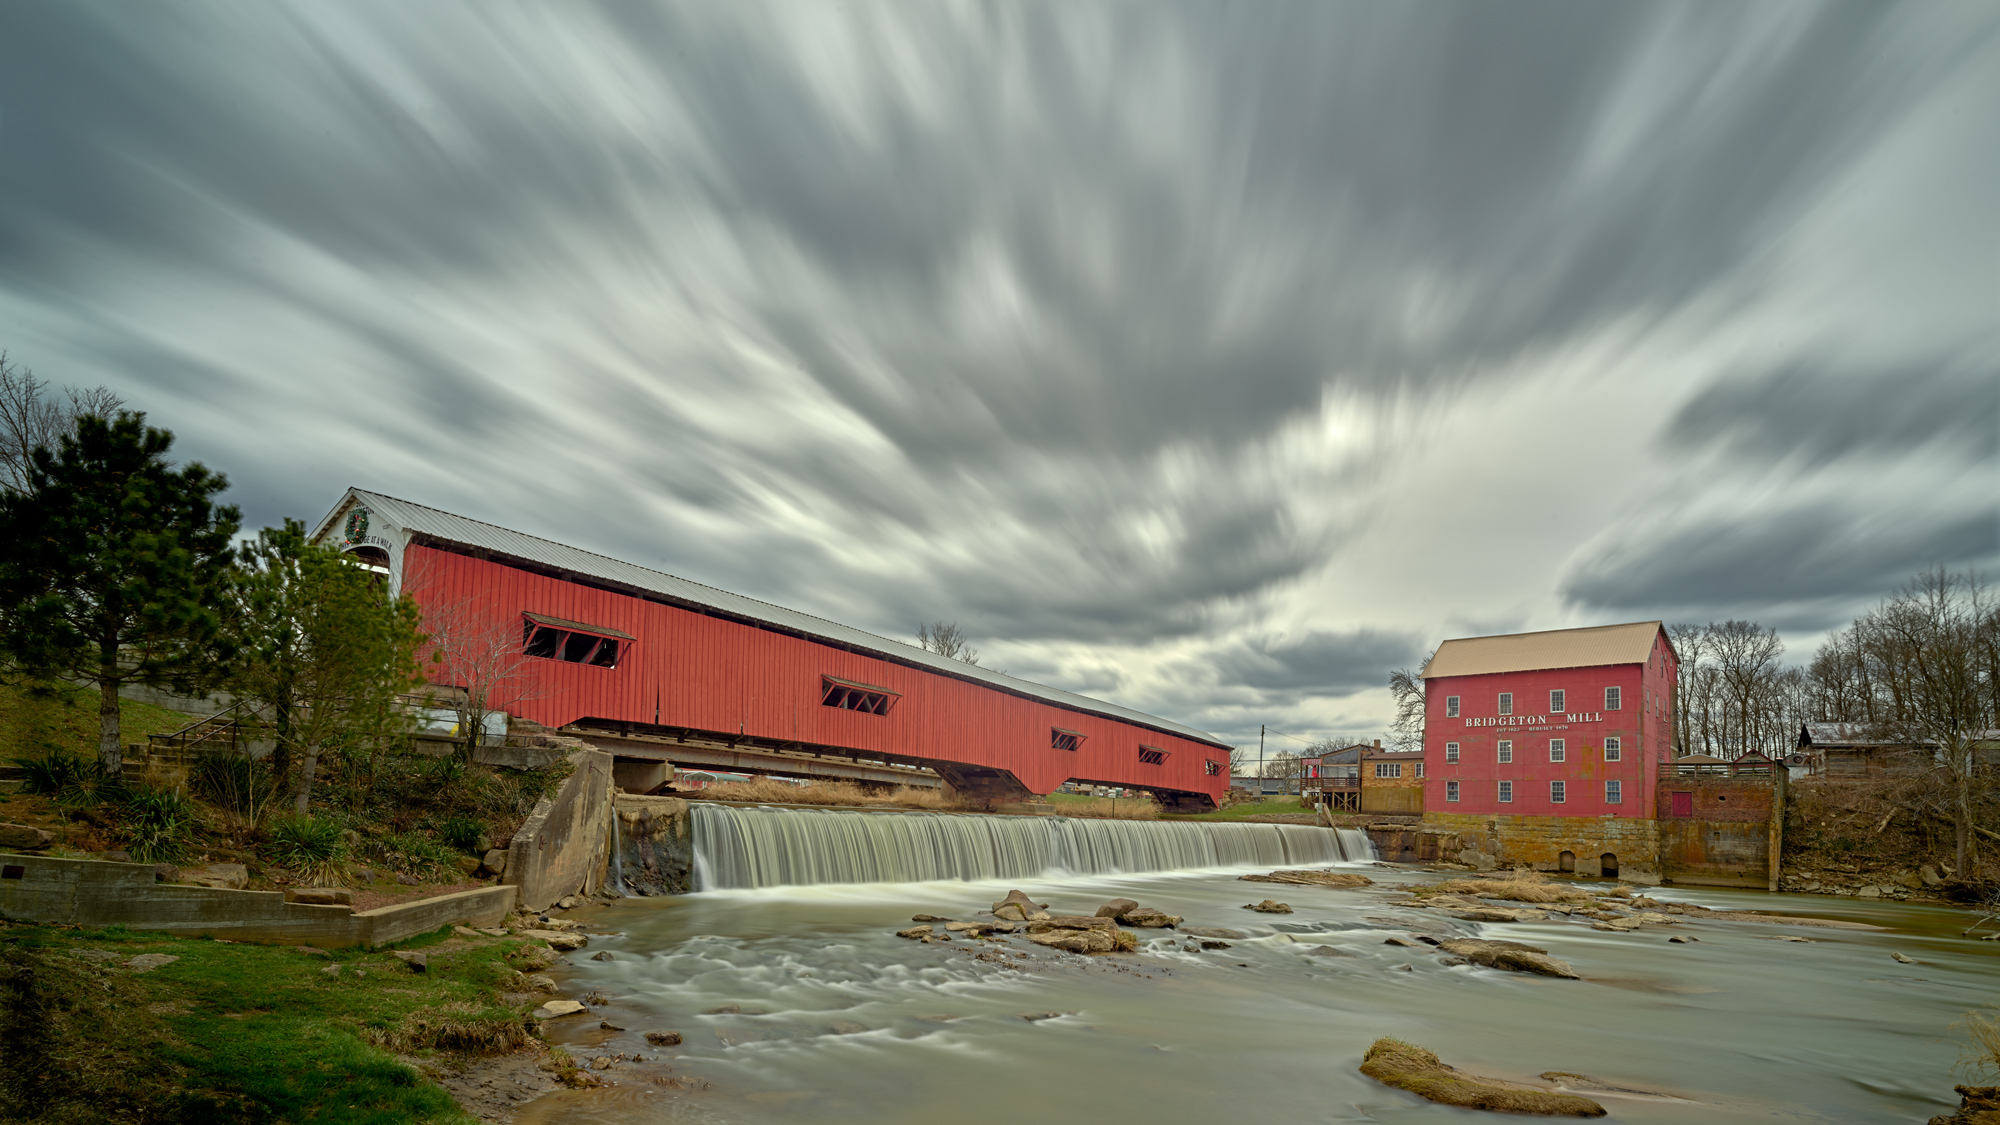 Bridgeton Covered Bridge. Made with a Phase One IQ150 and Frame Averaging